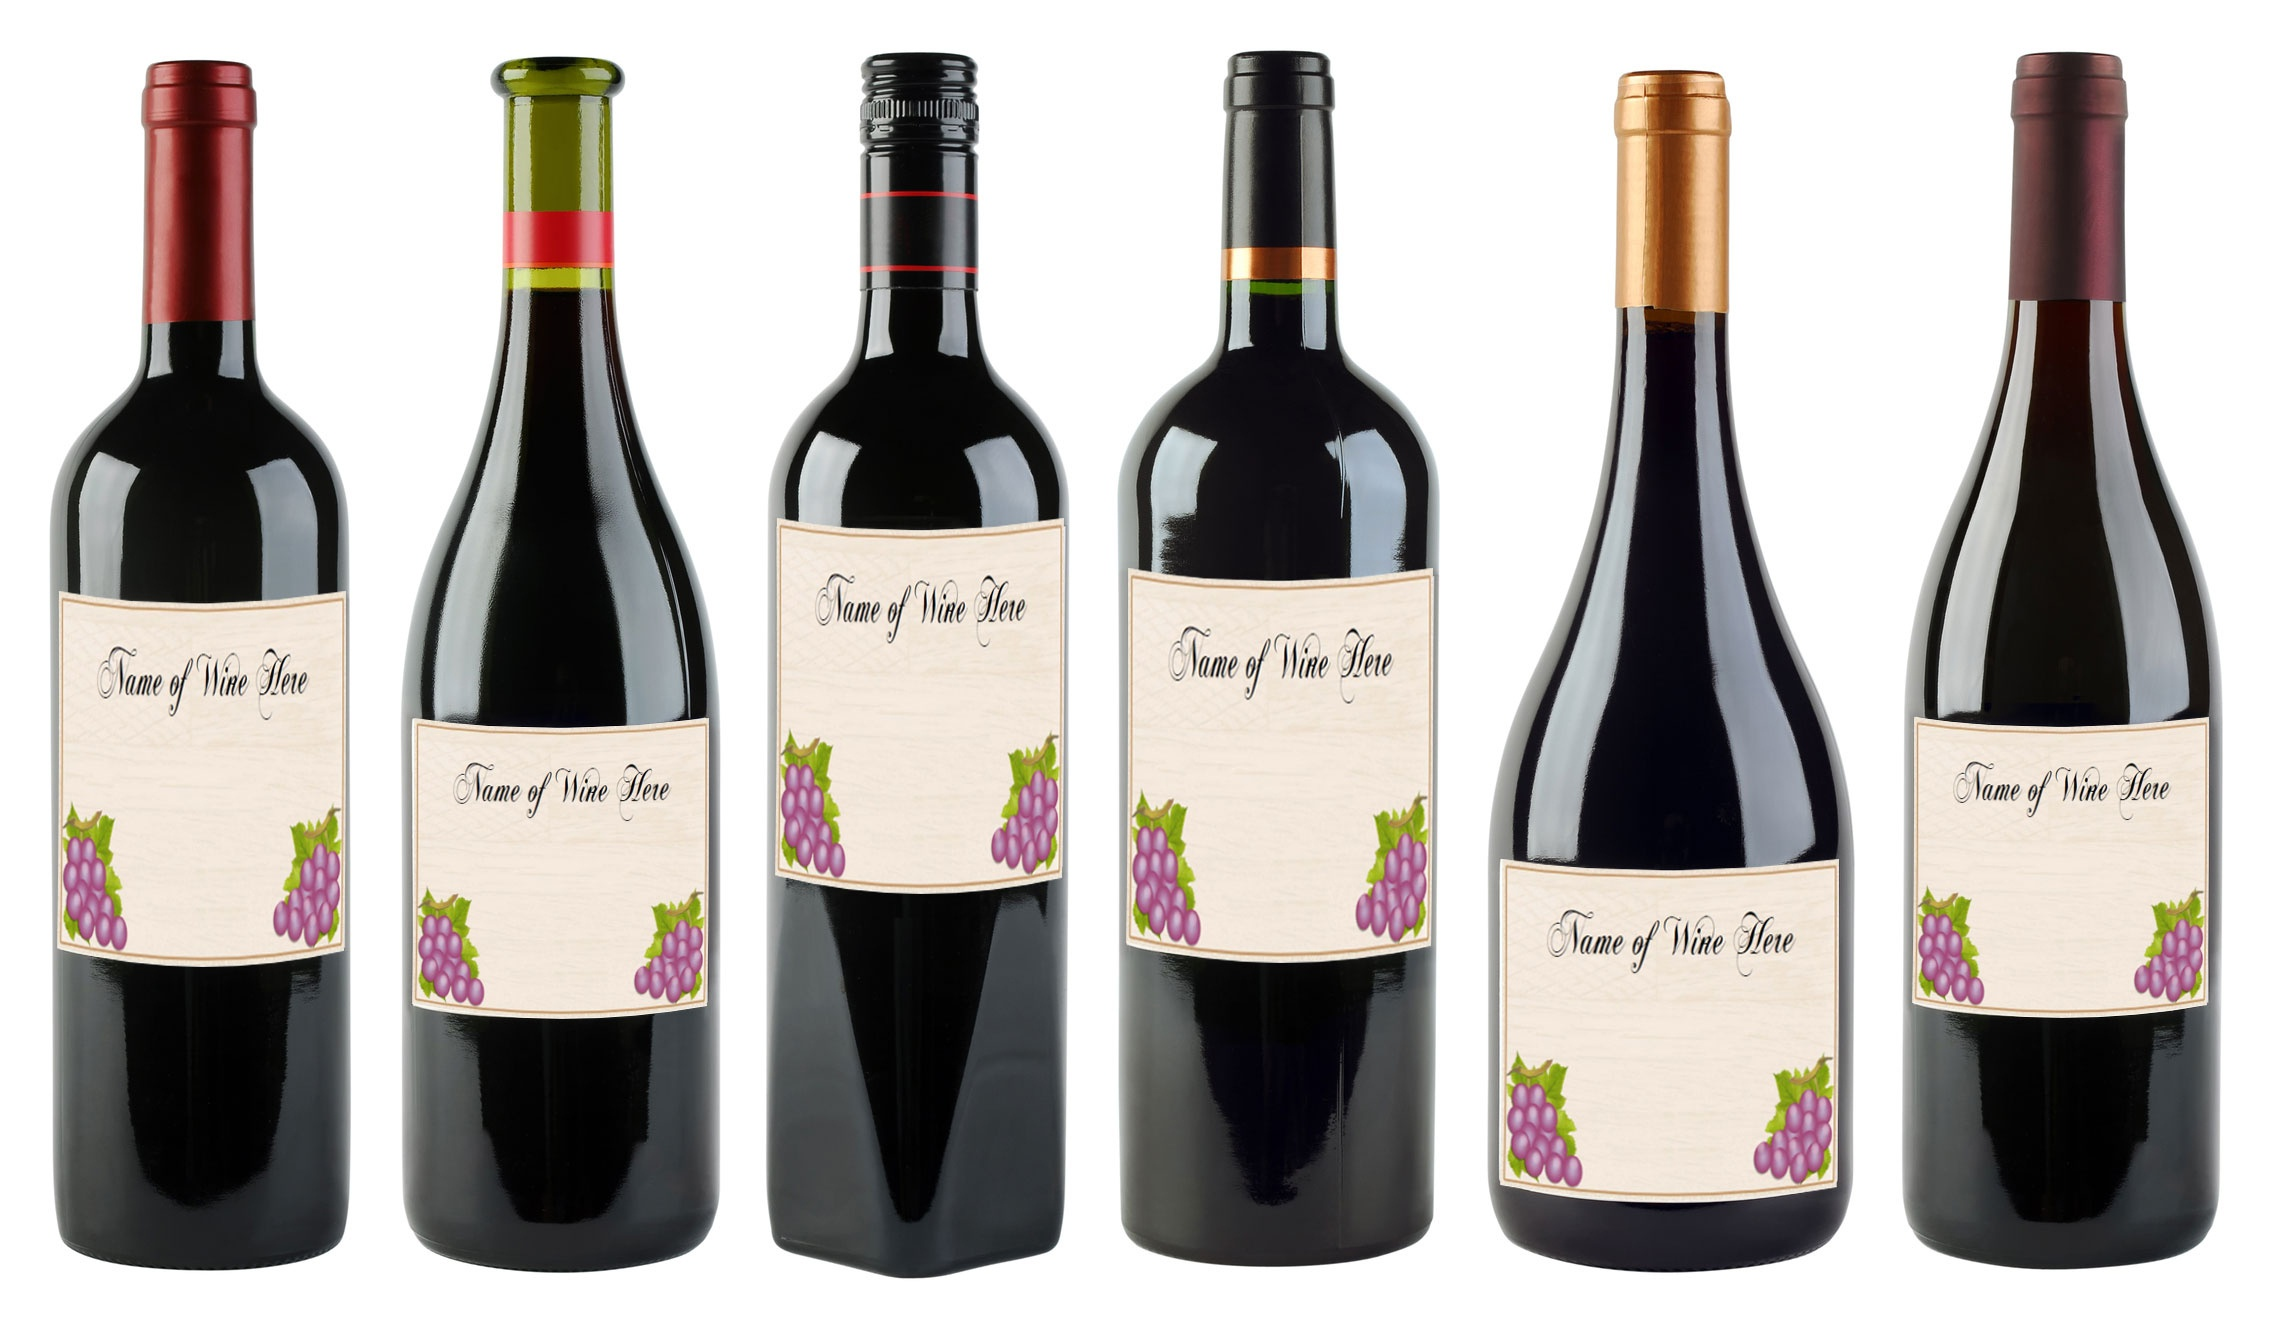 6 Free Printable Wine Labels You Can Customize | Lovetoknow - Free Printable Wine Labels